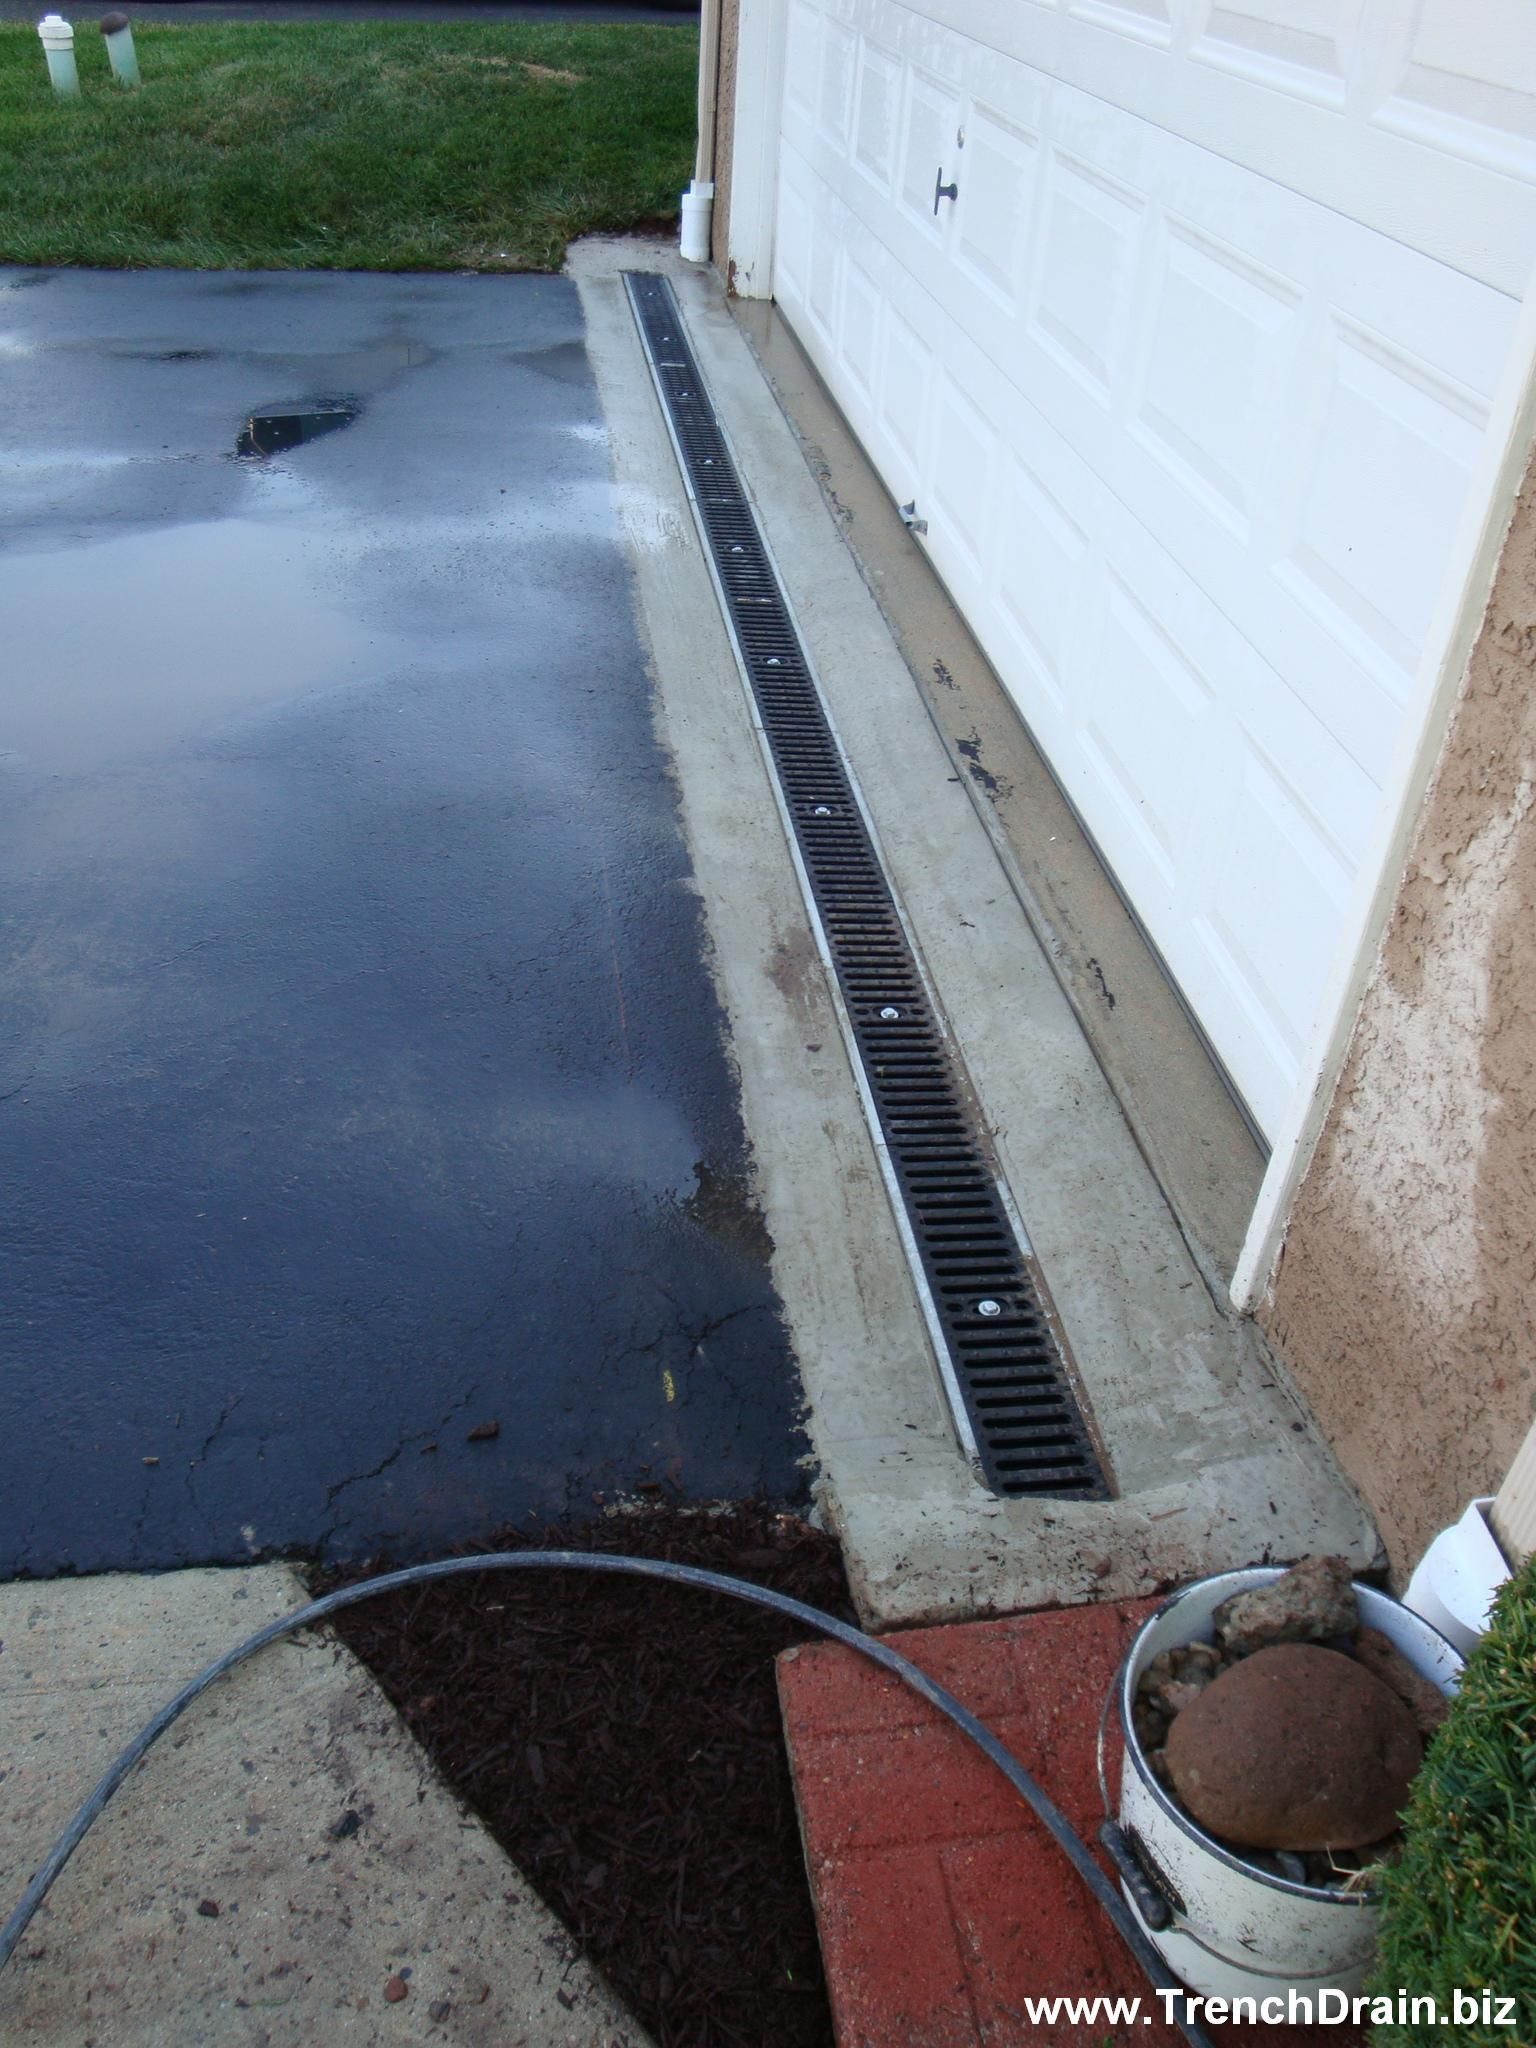 Downspout Drainage Ideas Diy Best Of Trench Drain Installation For The Residential Driveway Backyard Drainage Drainage Solutions Yard Drainage